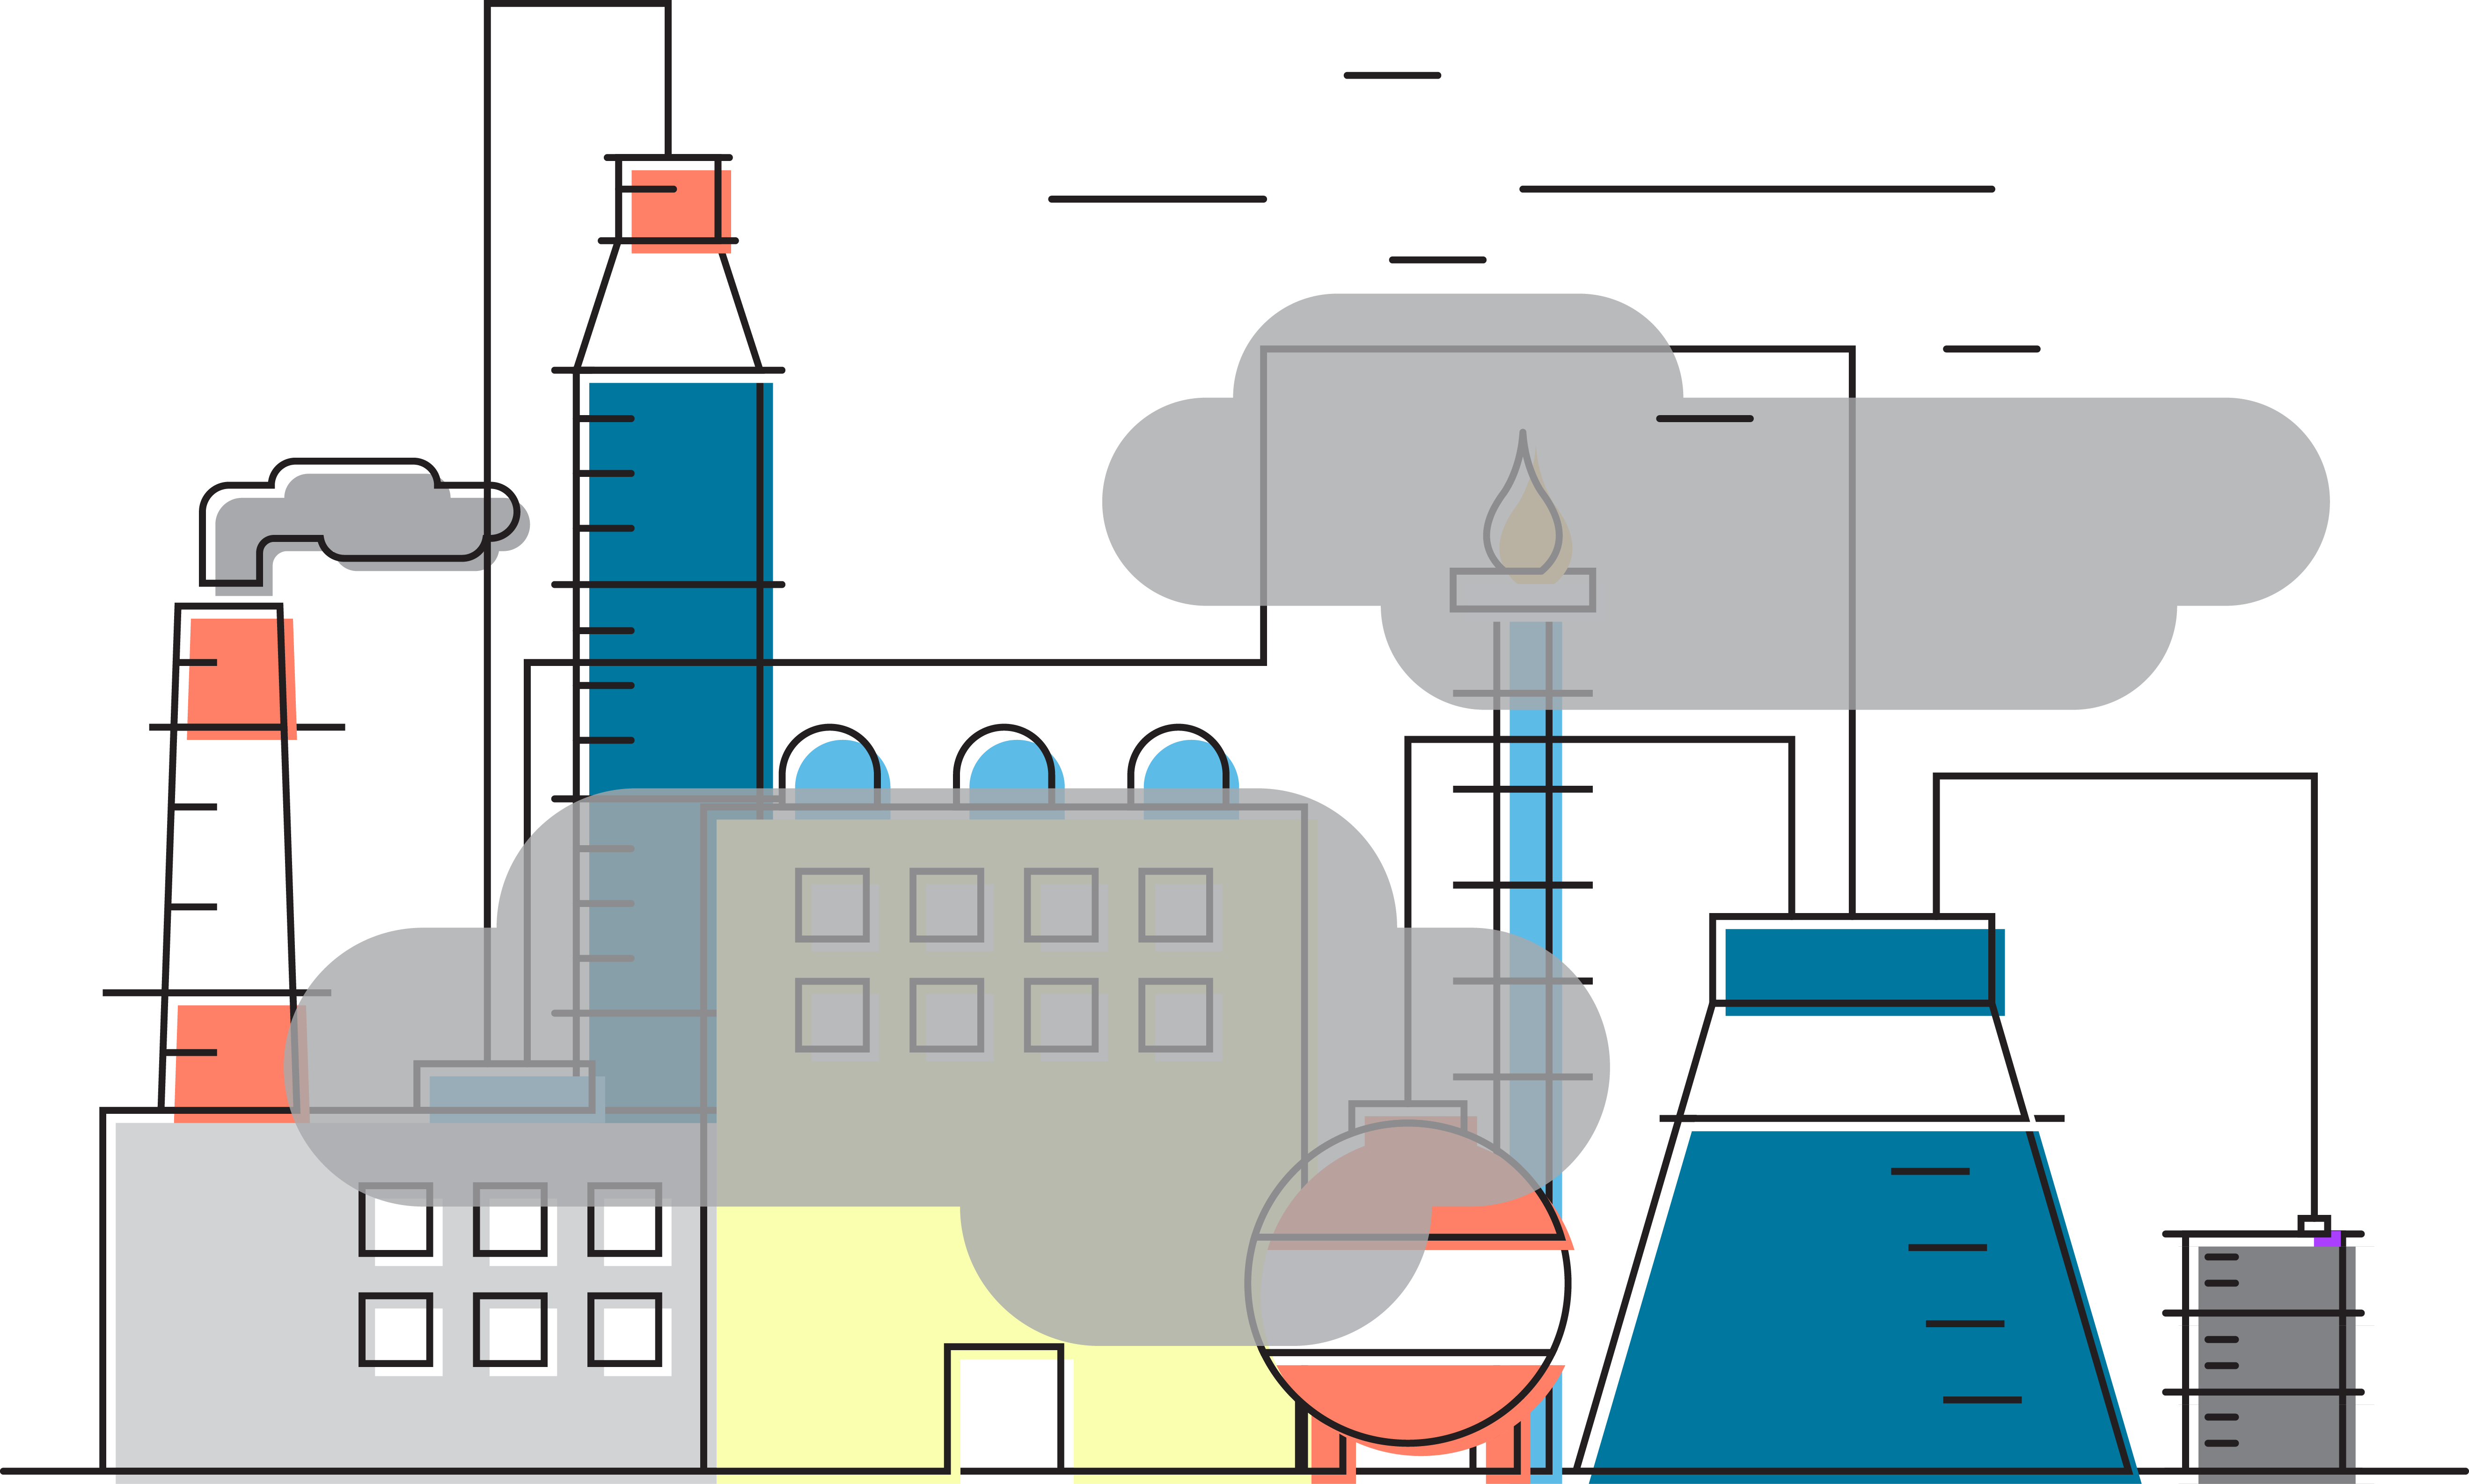 Air vector transprent png. Industry clipart industrial water pollution